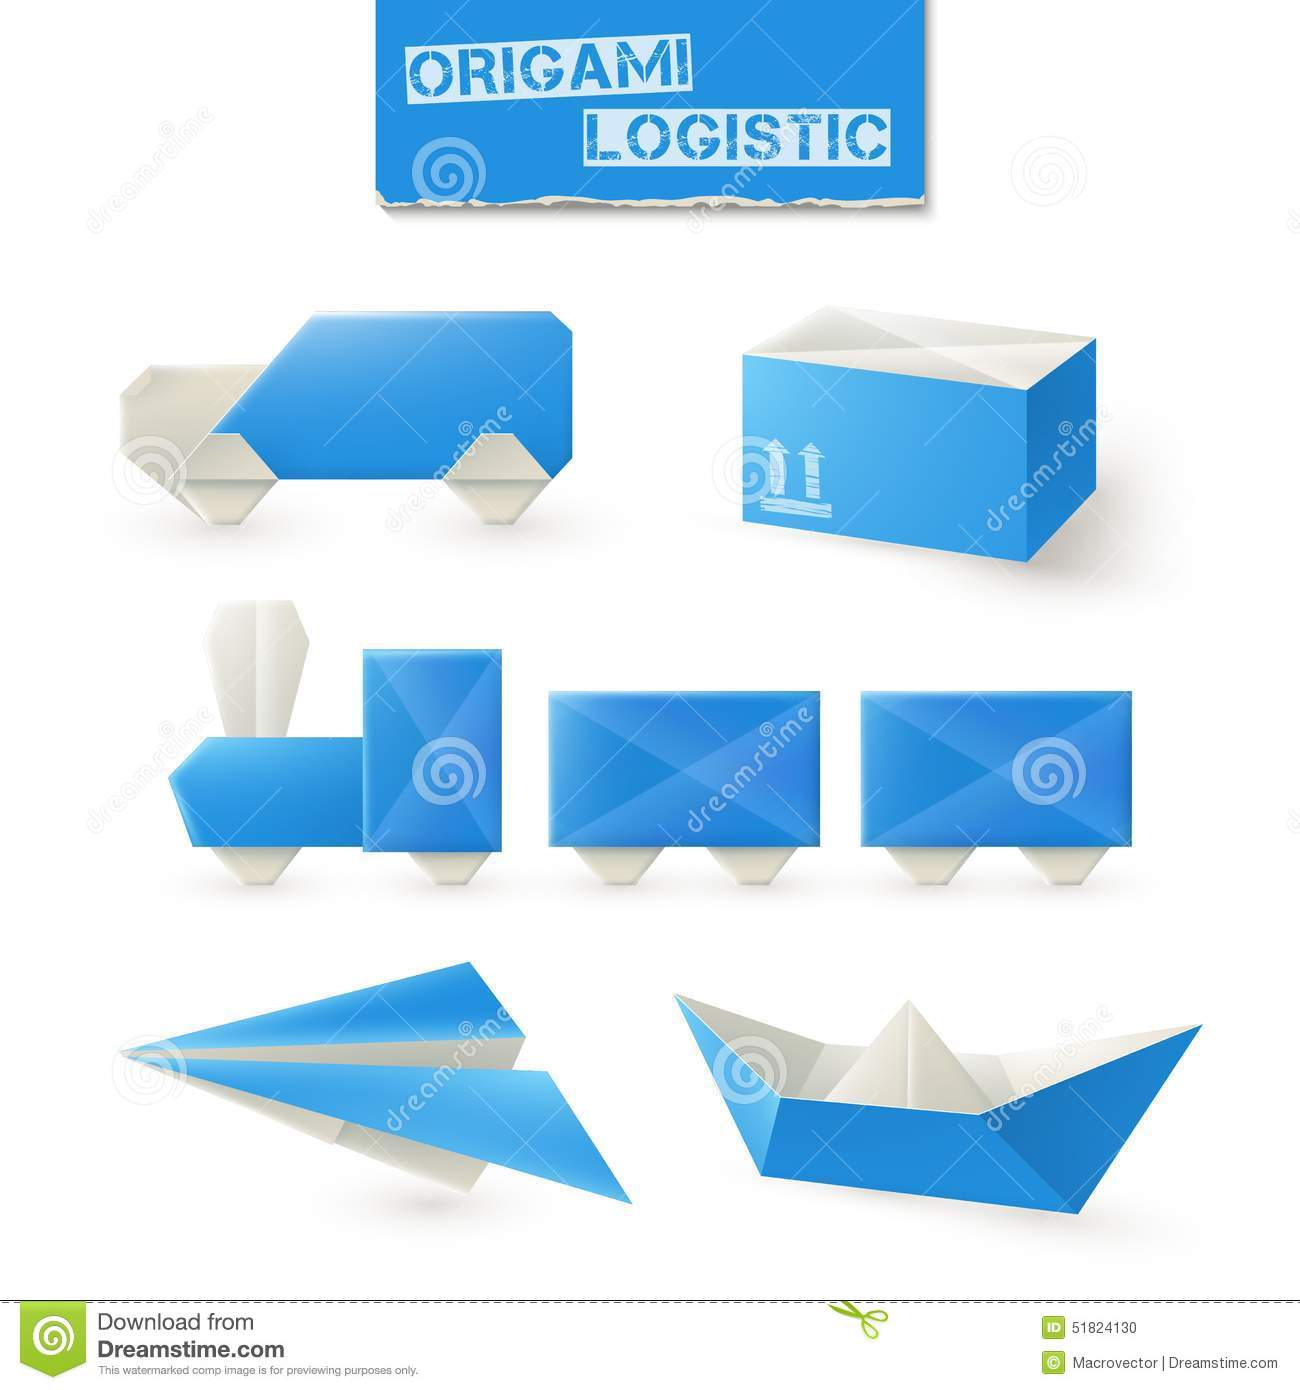 Origami Logistic Set Stock Vector Illustration Of Design 51824130